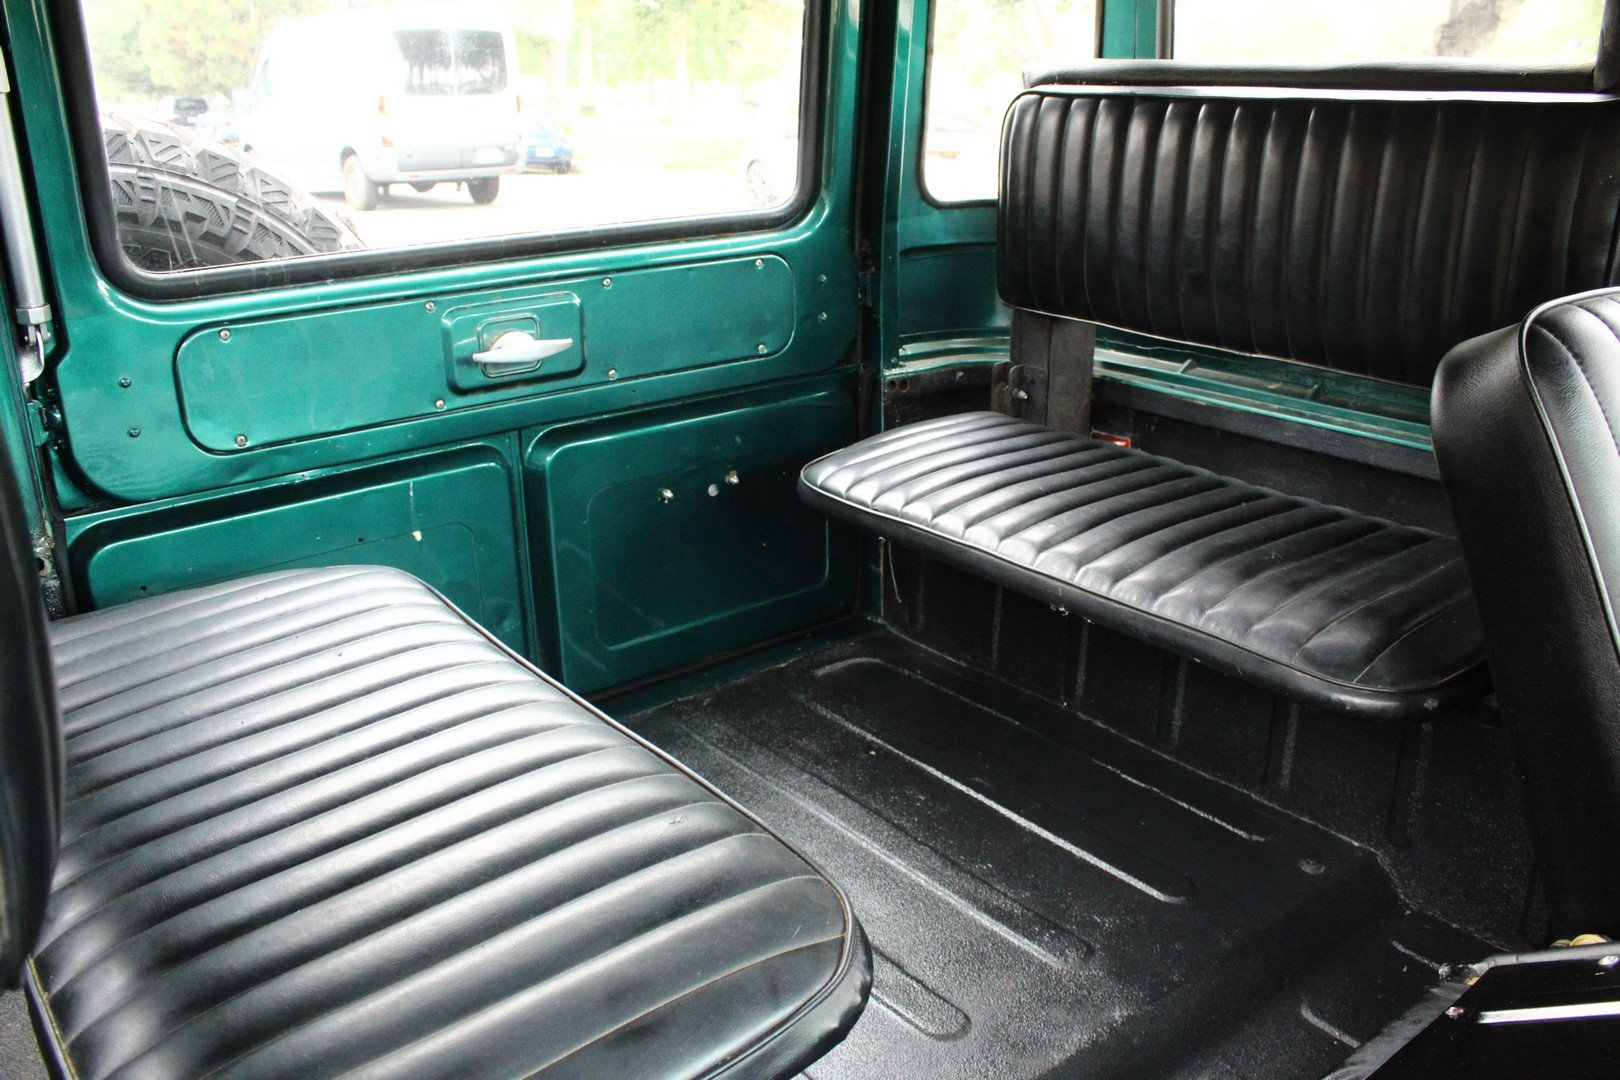 1972 TOYOTA LAND CRUISER FJ 40 4WD For Sale (picture 4 of 6)